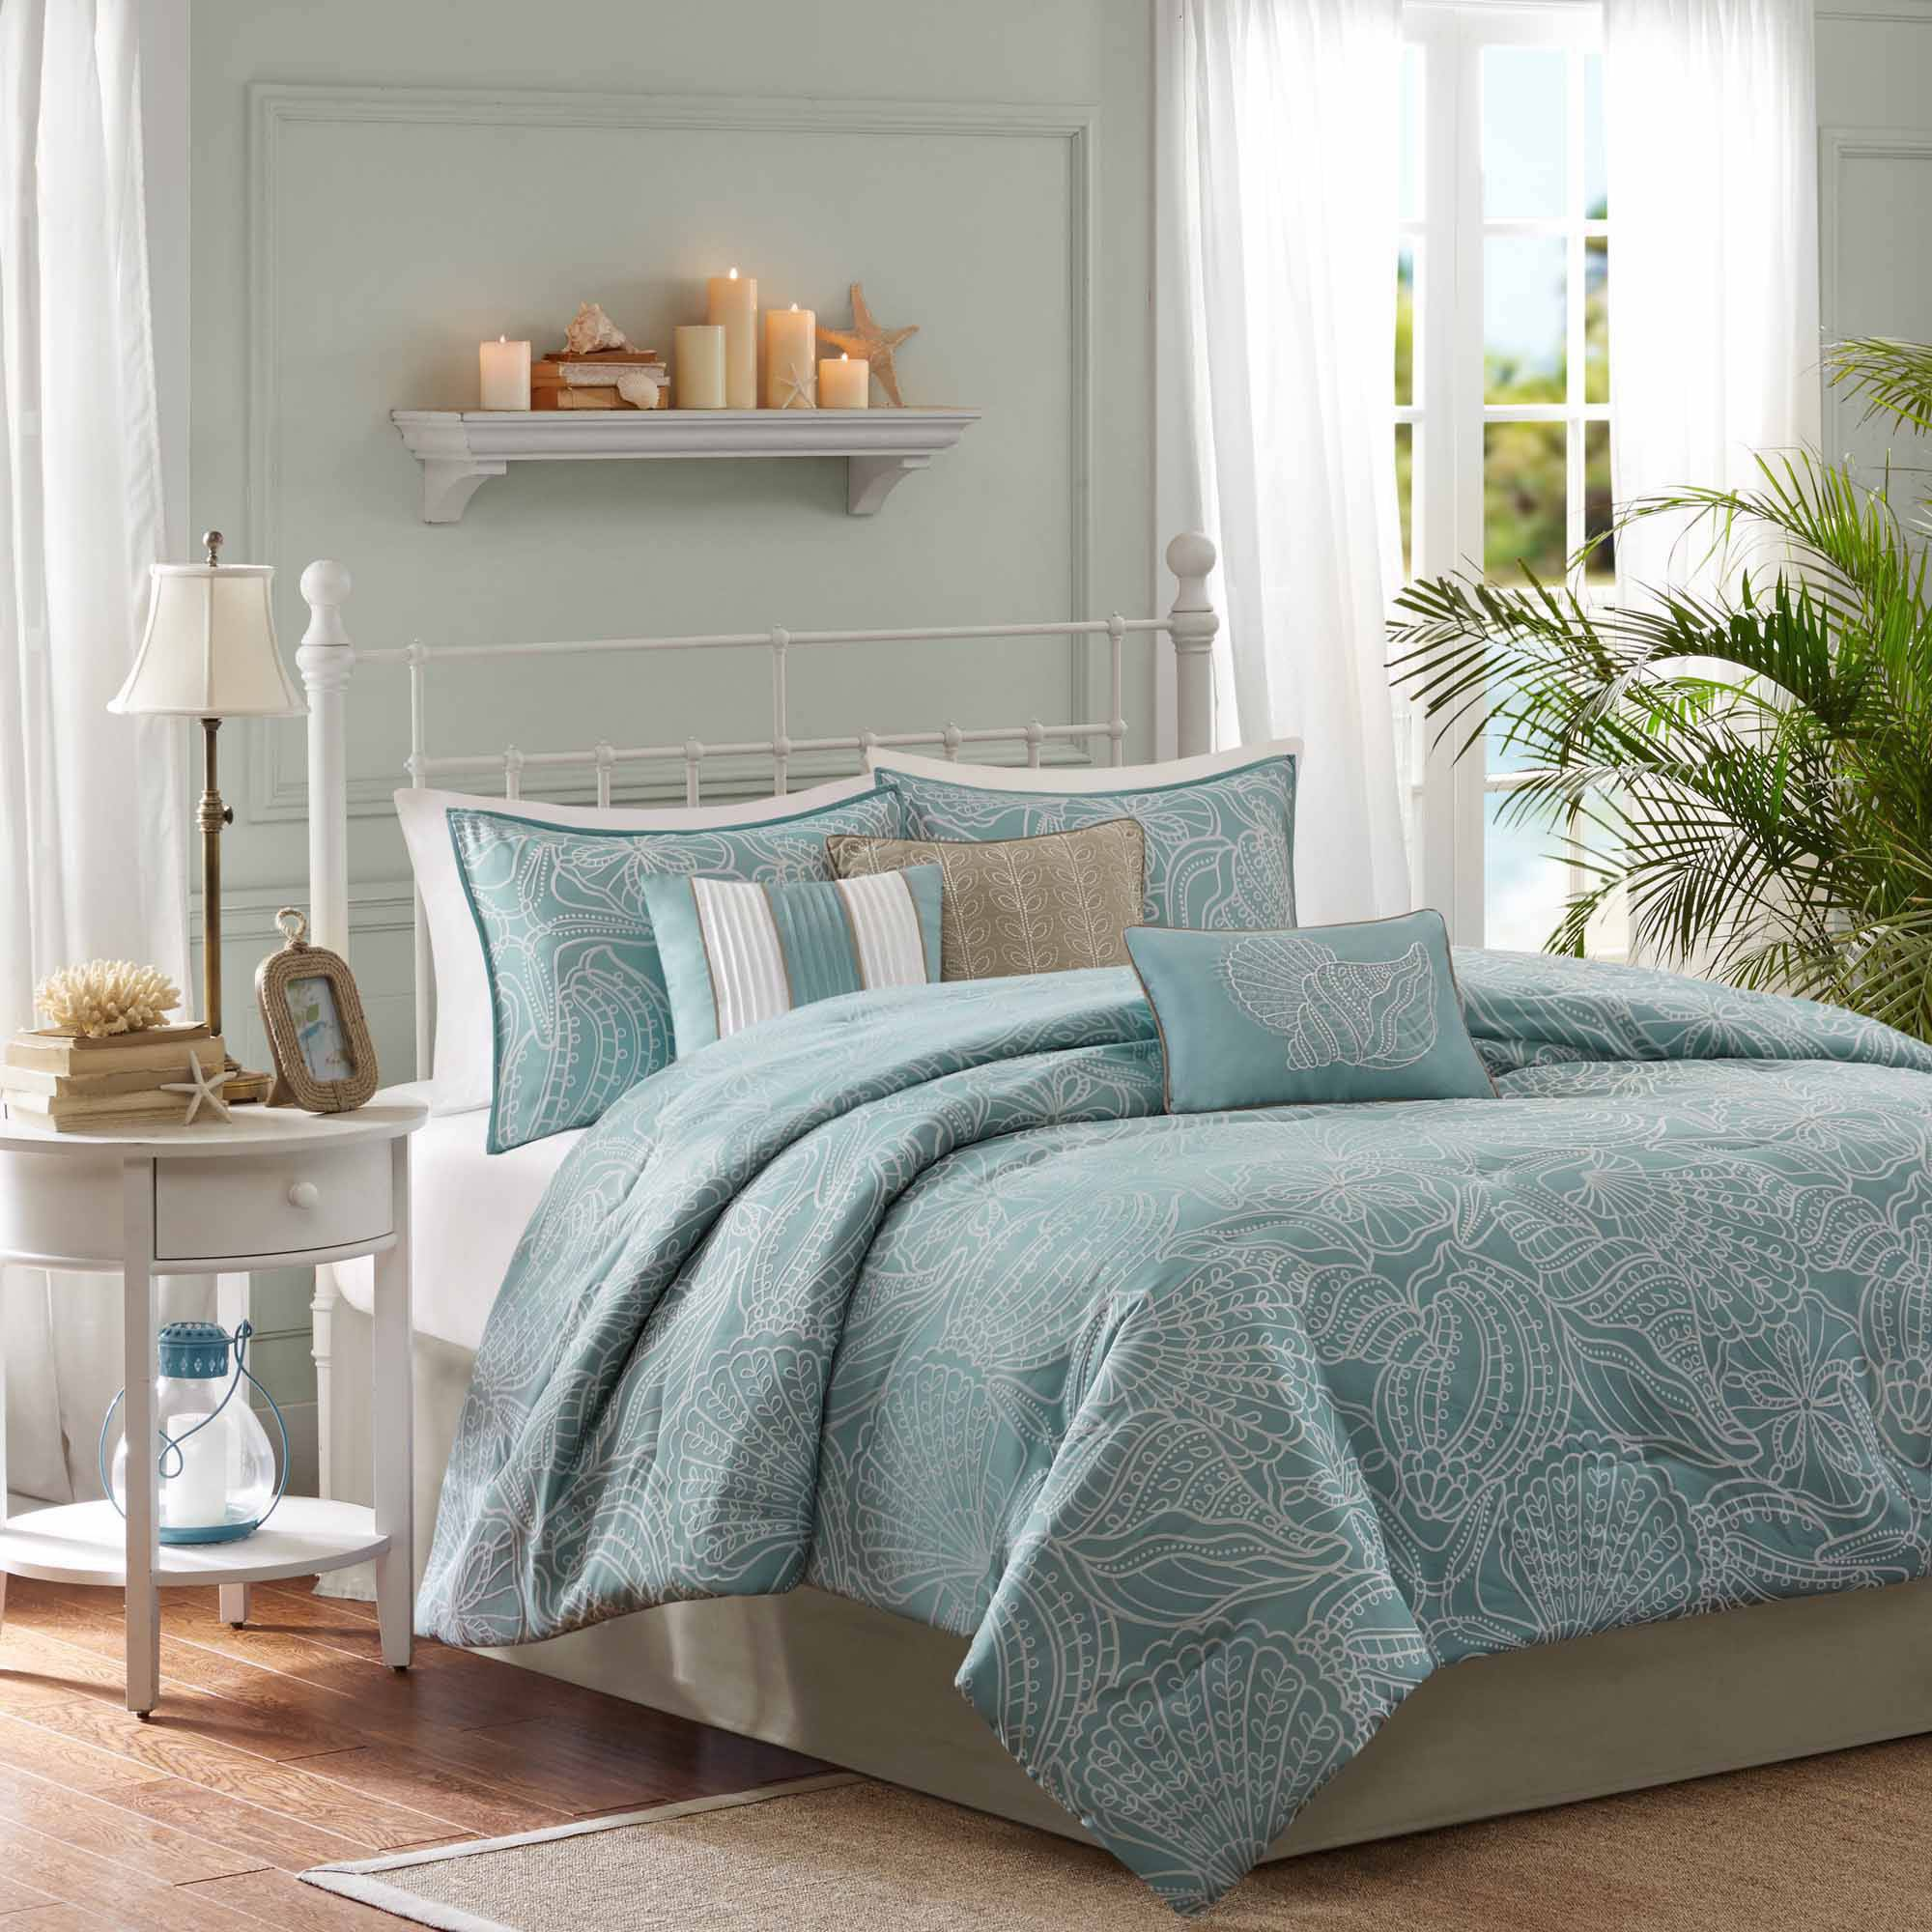 comforter blue product free bbda ink overstock ivy bath mini bedding today set shipping sateen cotton plaid grey and gray printed sterling